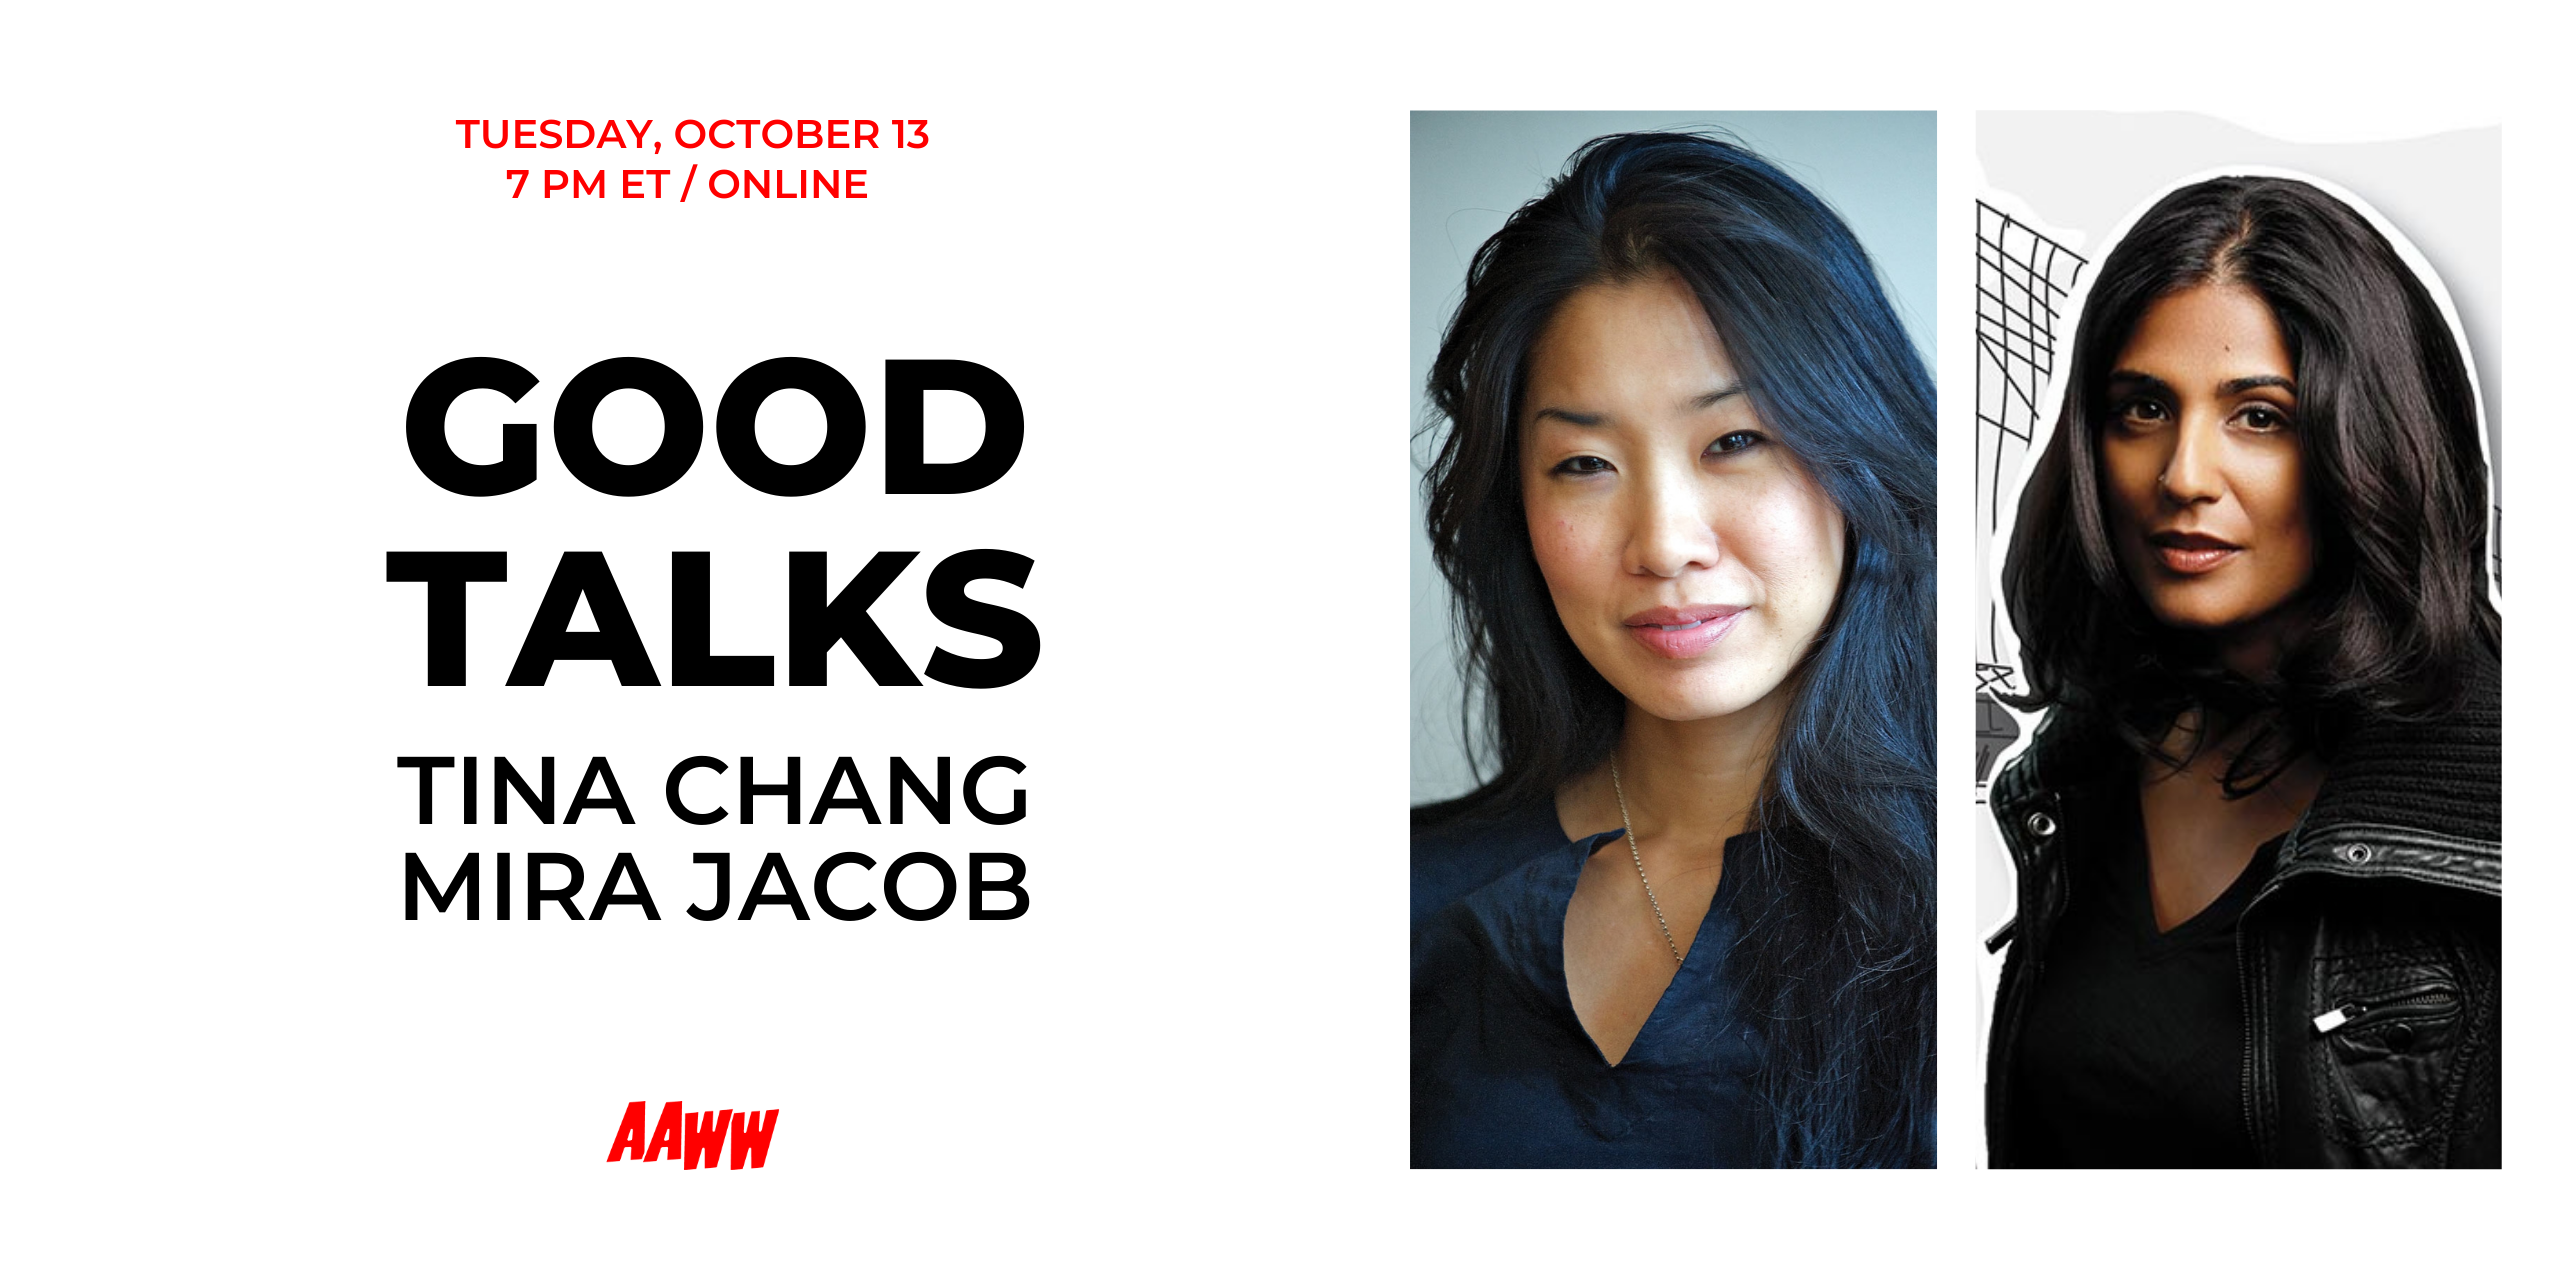 Good Talks: Tina Chang and Mira Jacob